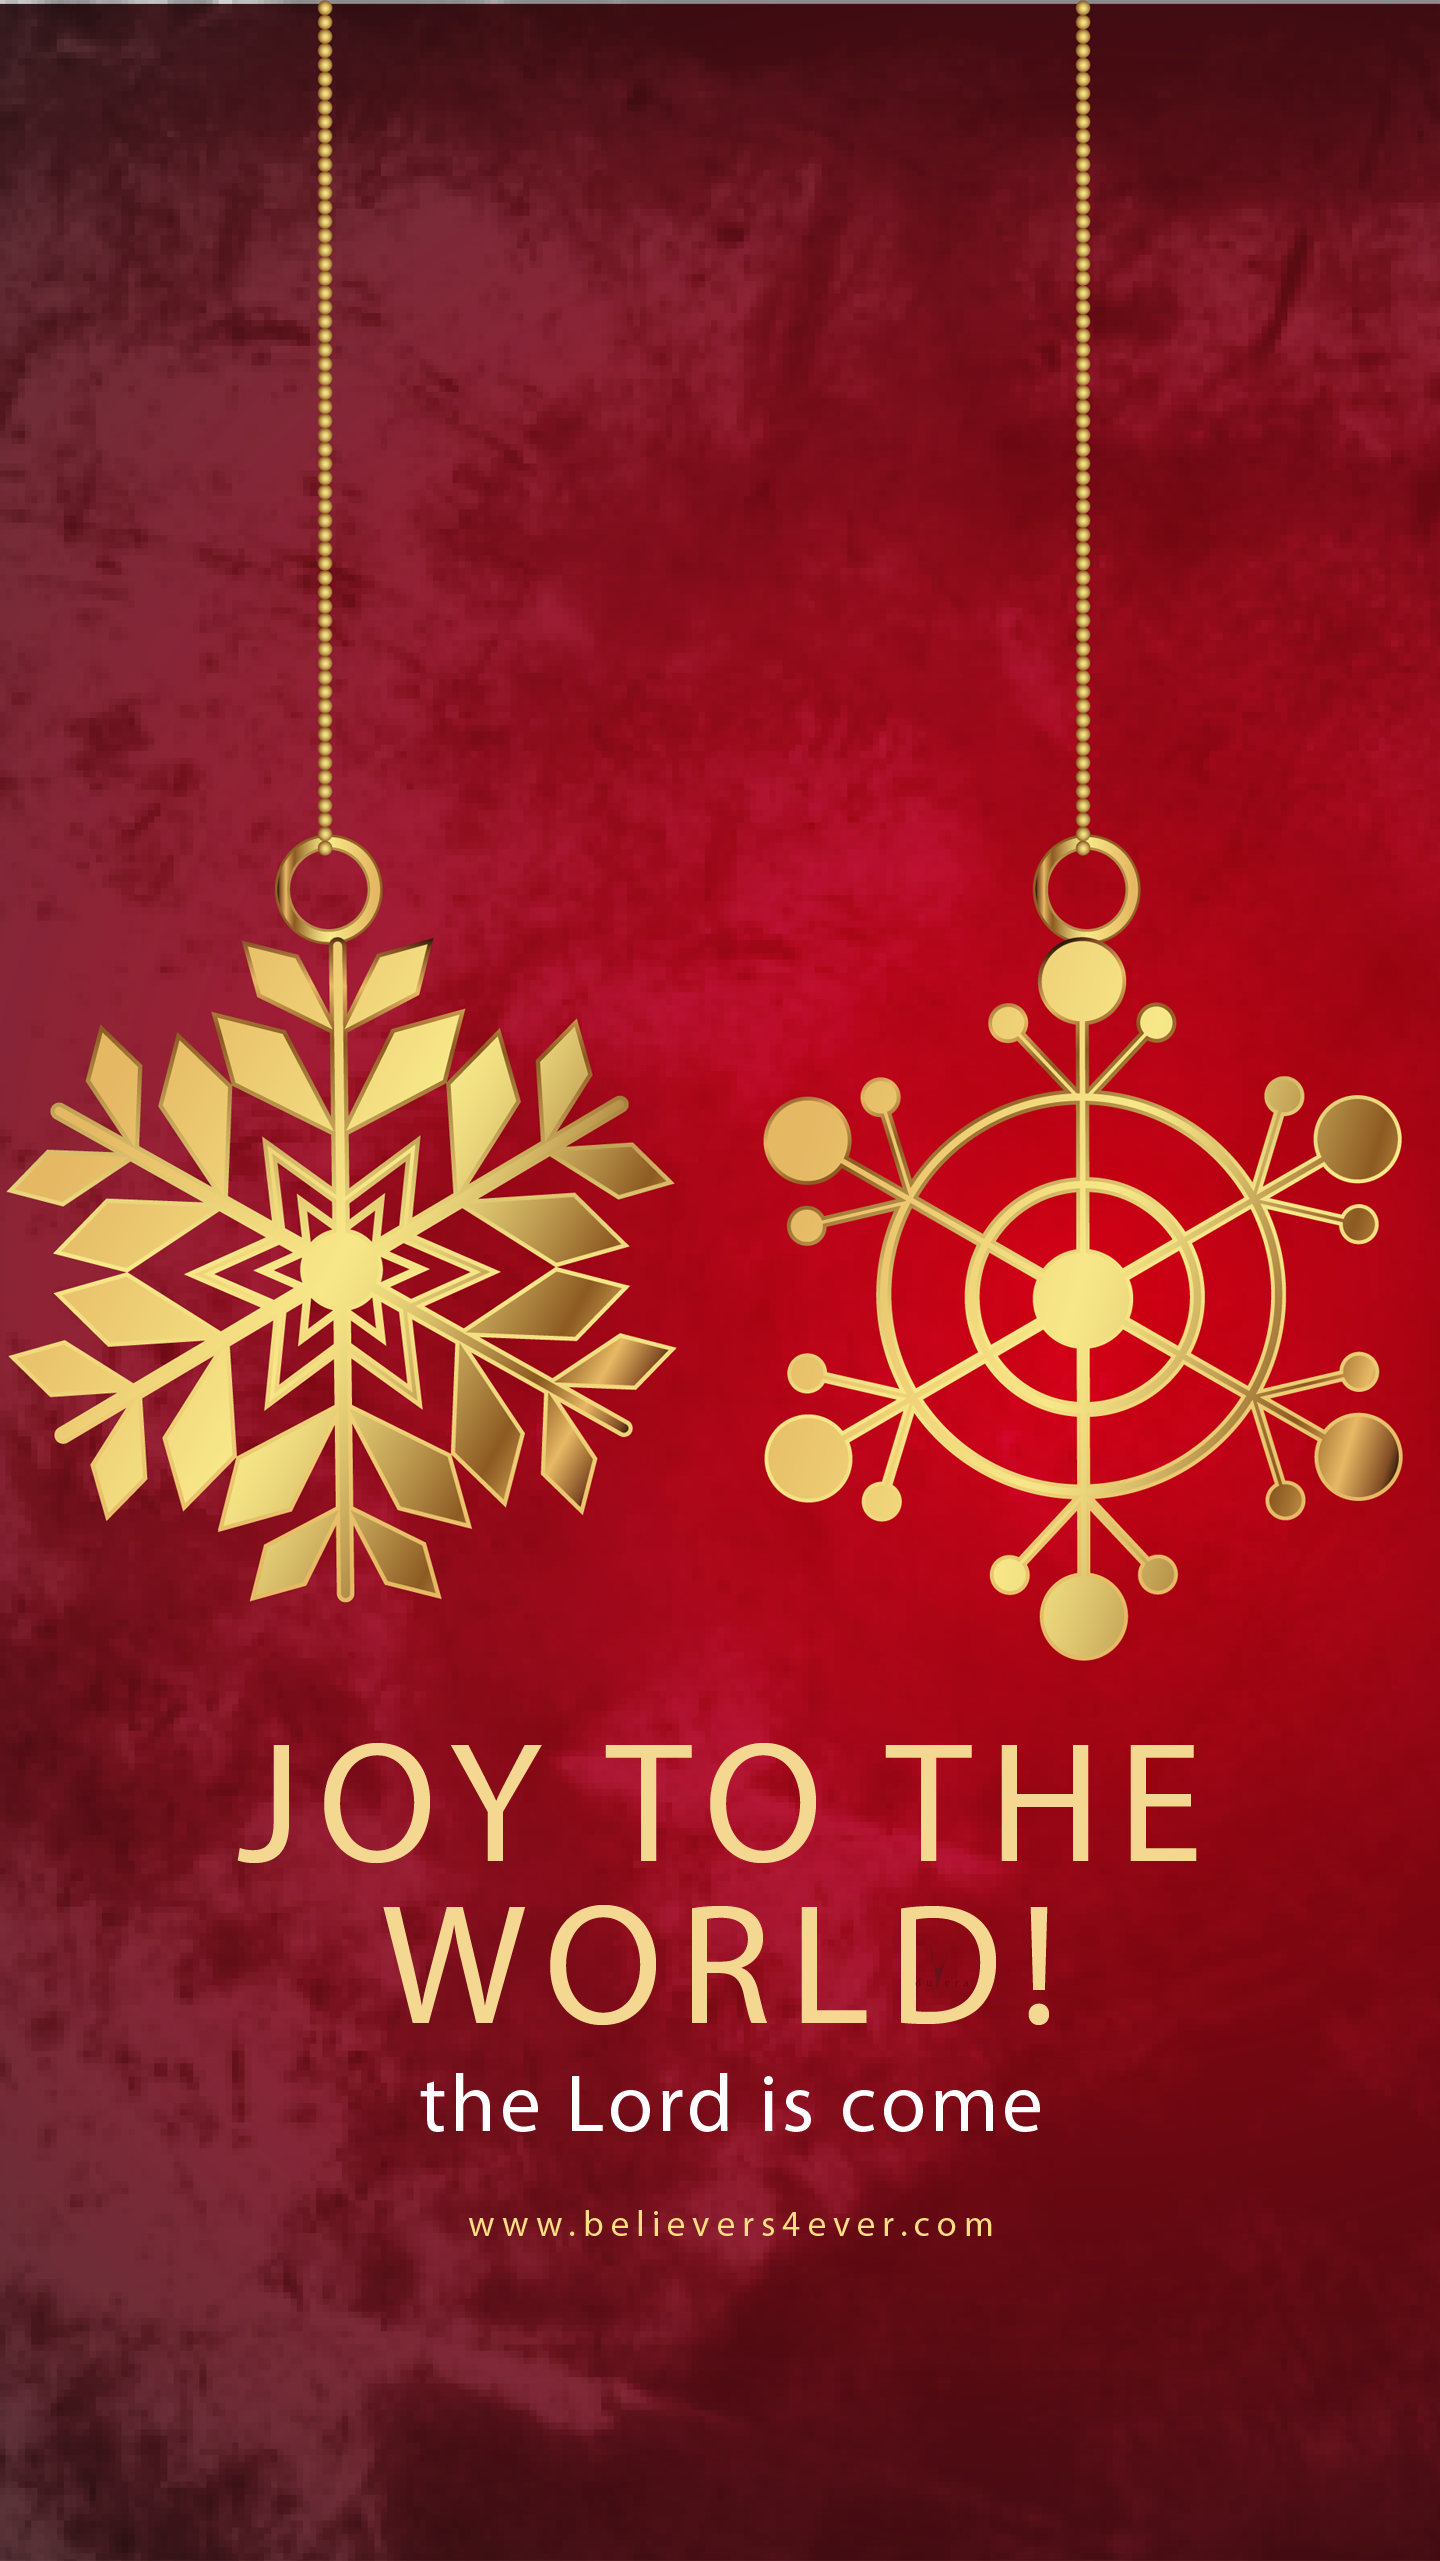 joy to the world christian christmas mobile wallpaper for android phones iphone 6s iphone